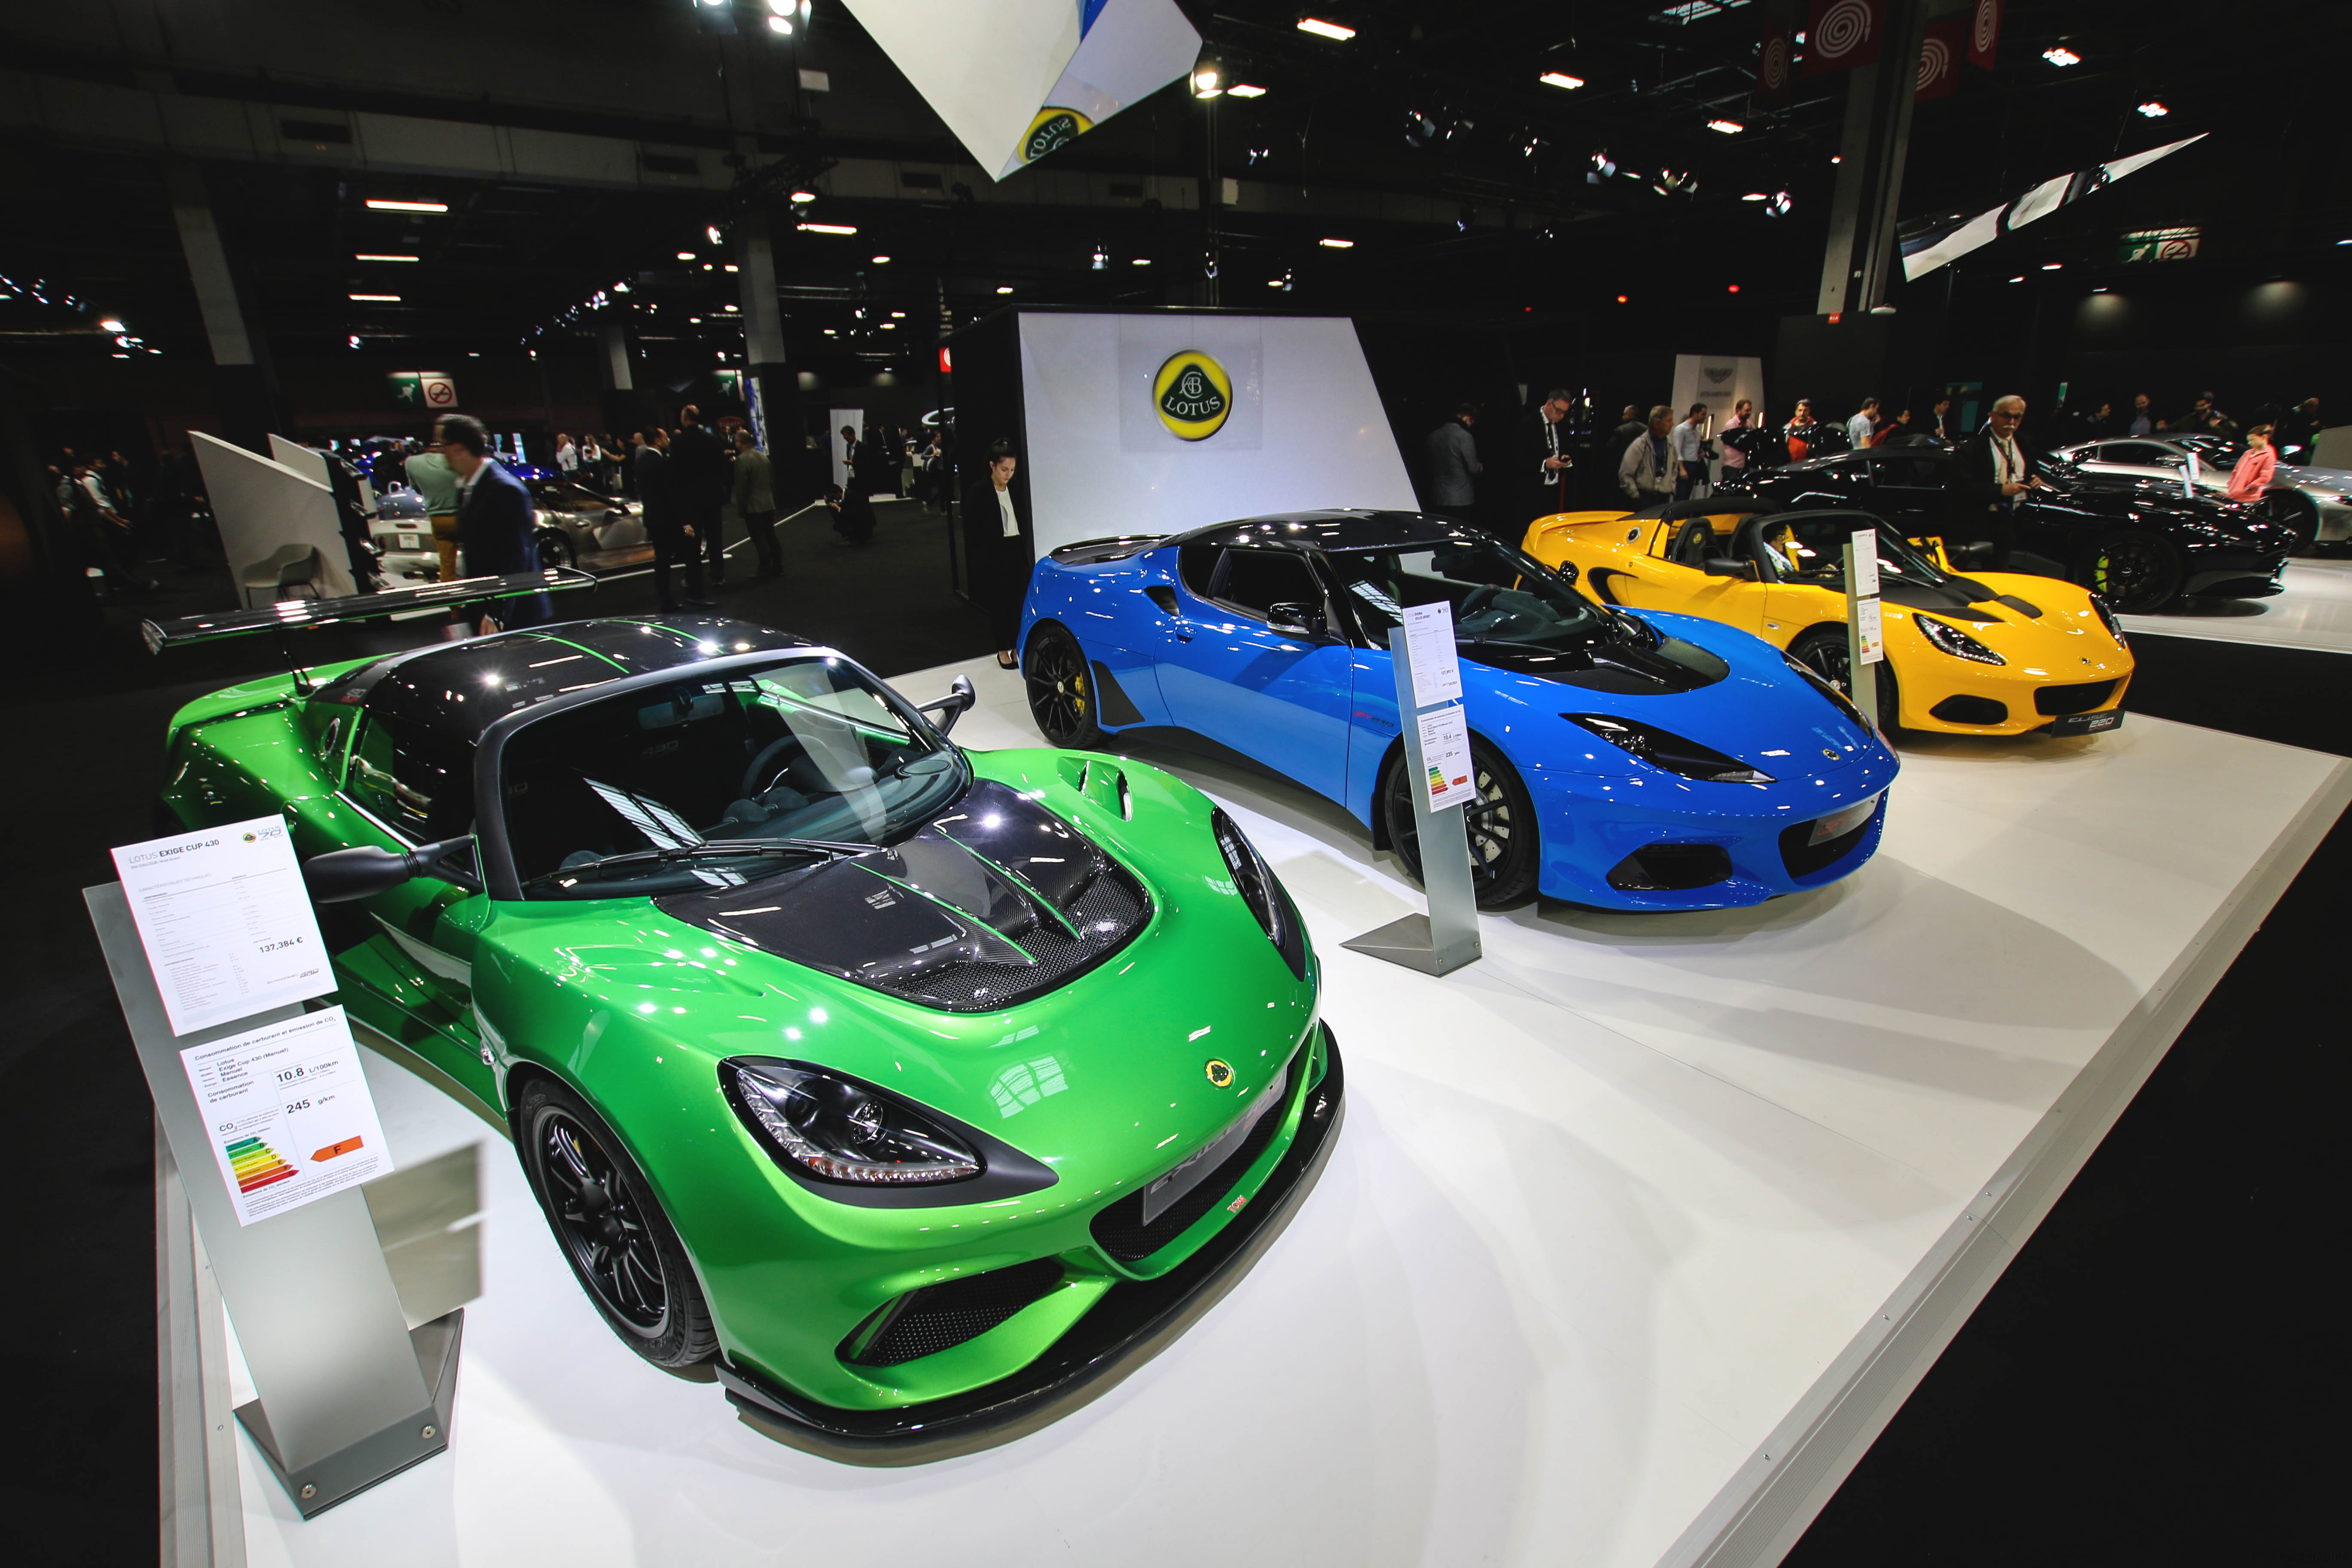 Lotus Cars - Paris Motor Show - 2018 - Mondial Auto - photo by Arnaud Demasier RS Photographie